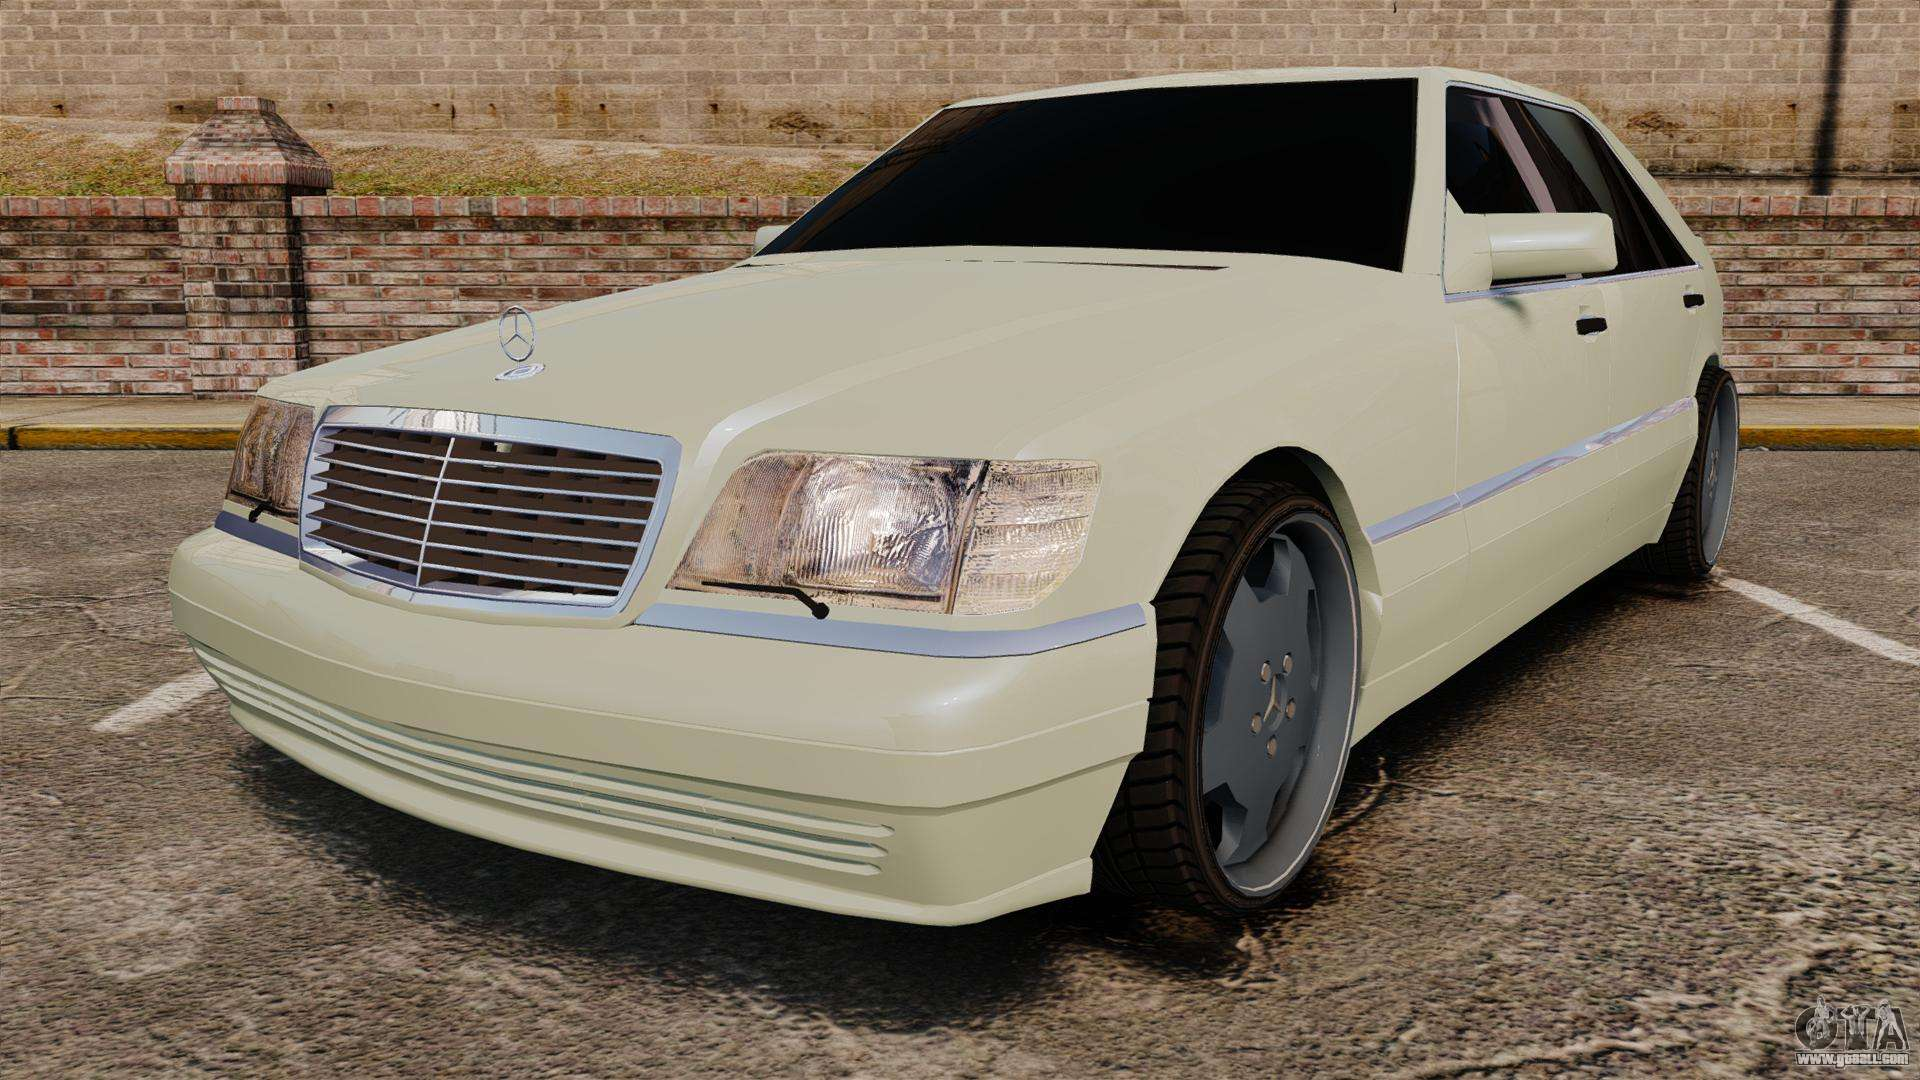 Mercedes benz s600 w140 1998 for gta 4 for S600 mercedes benz